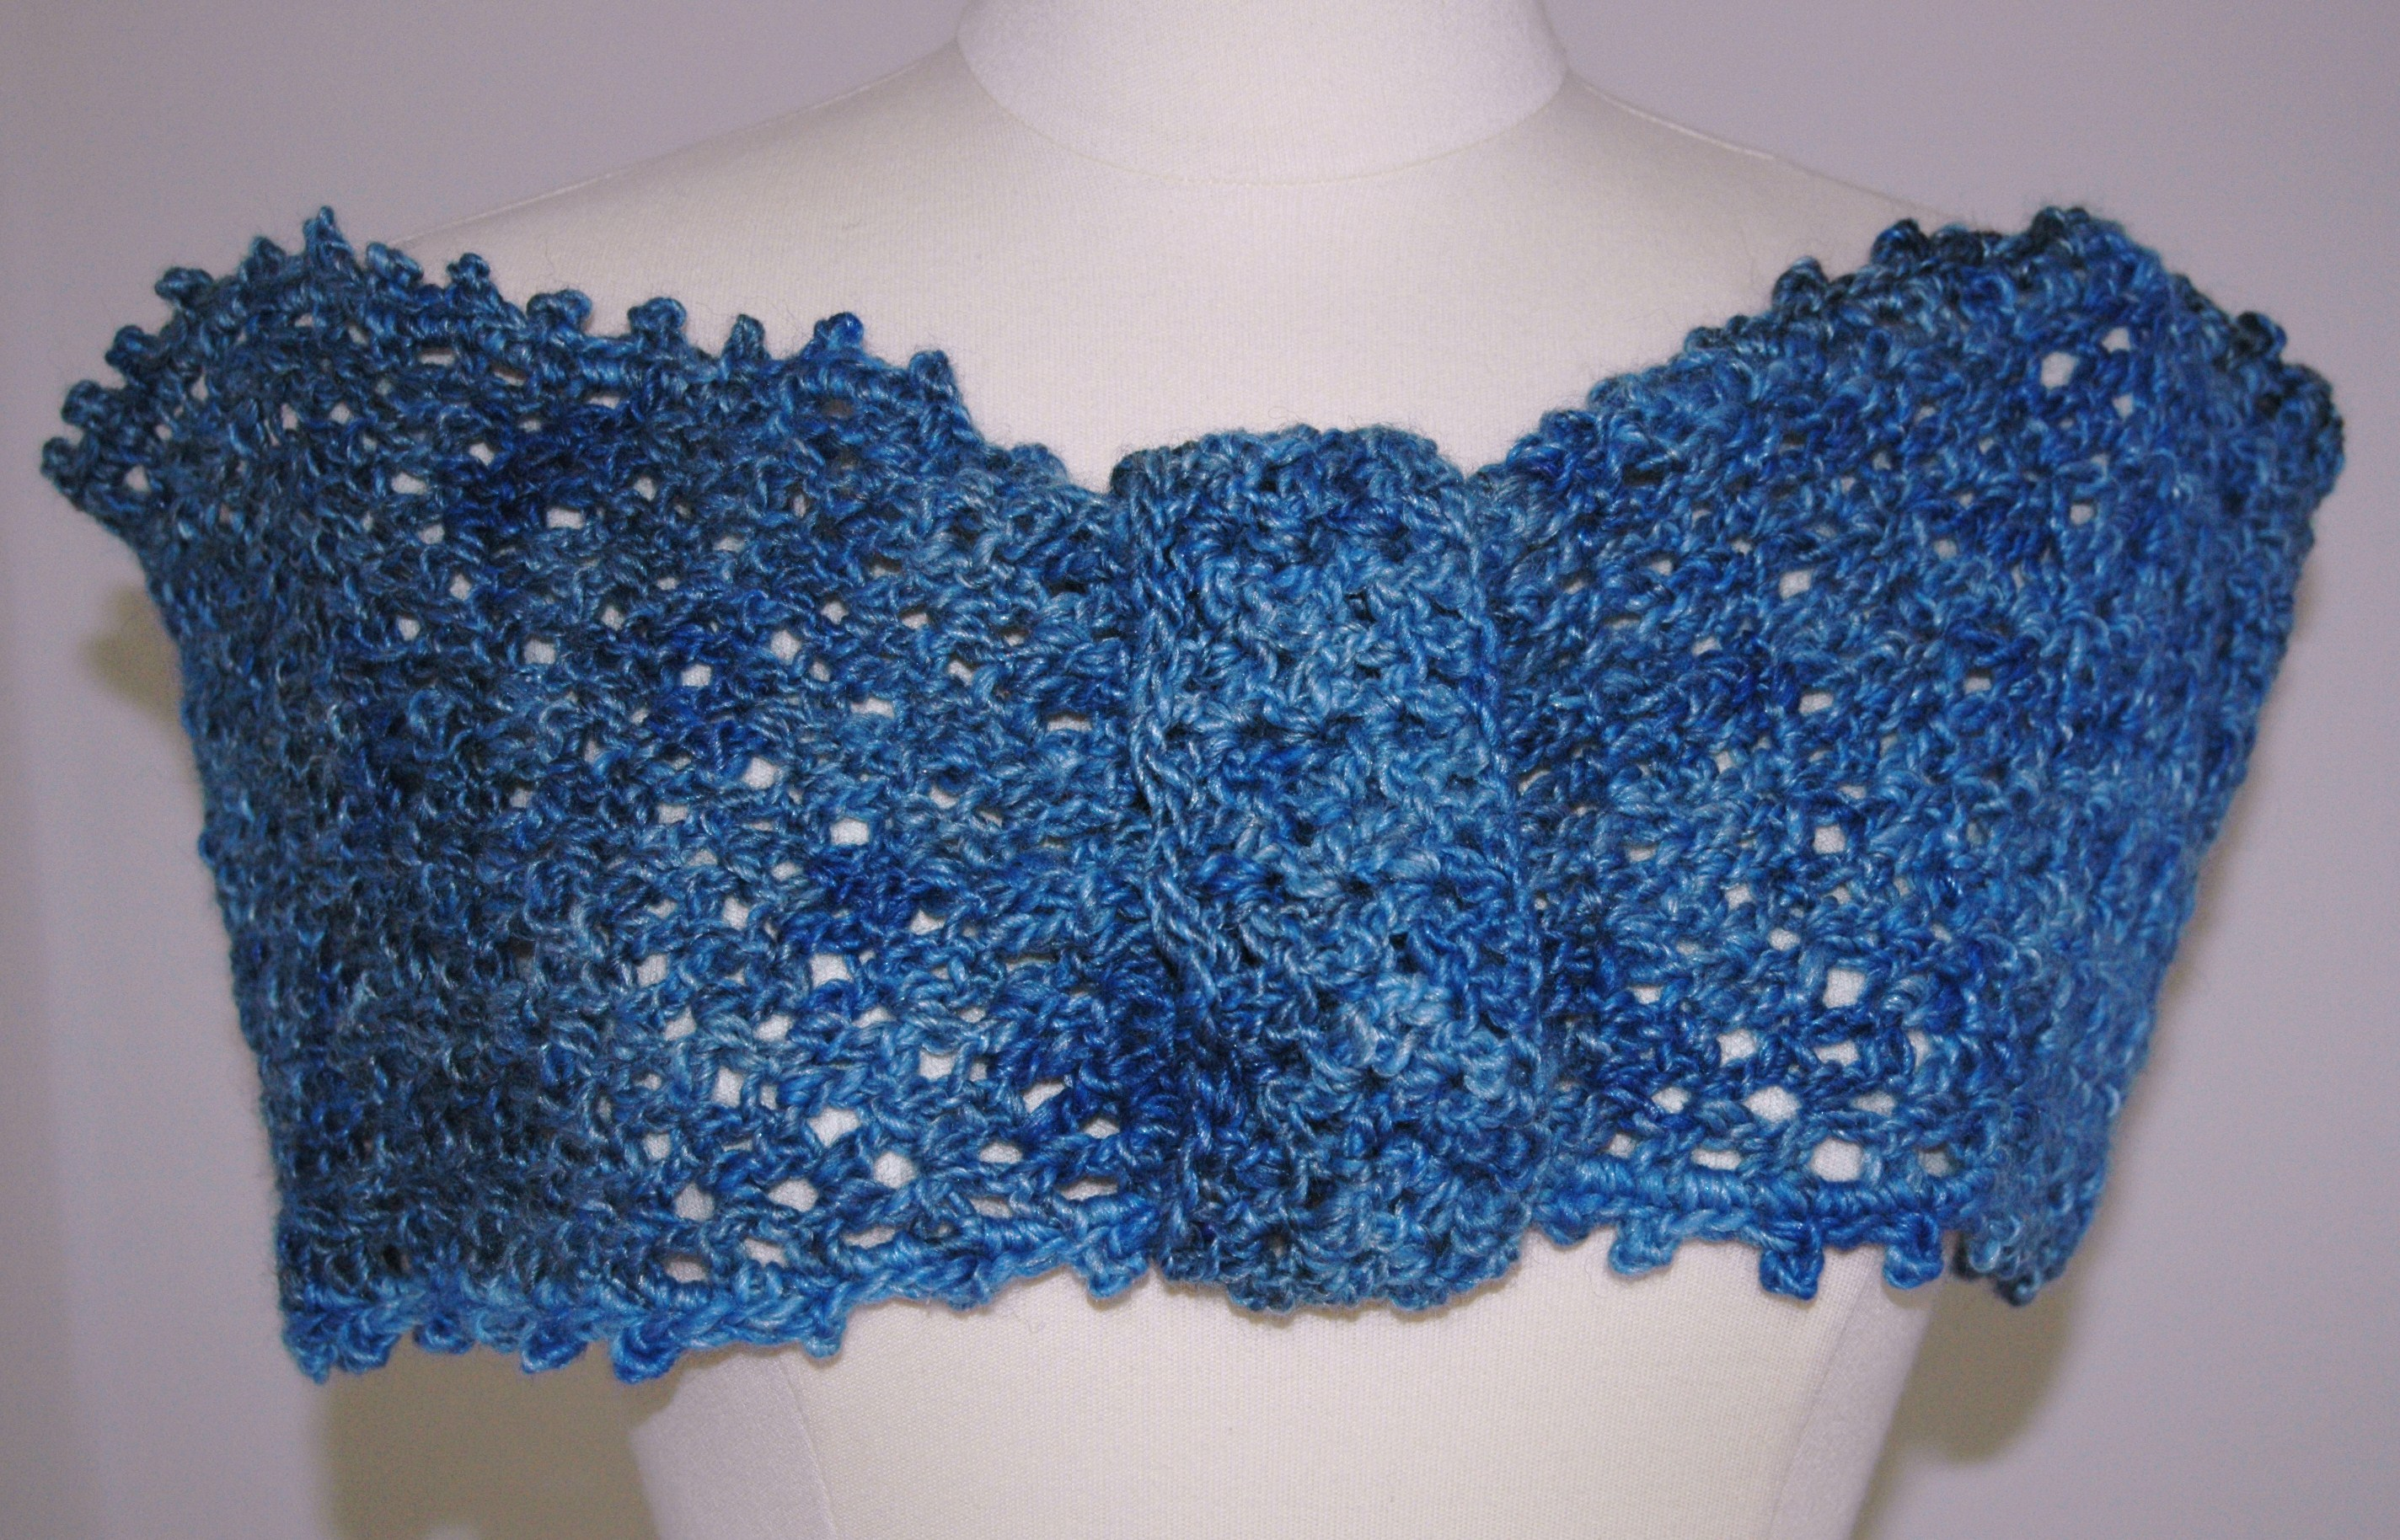 CROCHETED WRAP PATTERN How To Crochet